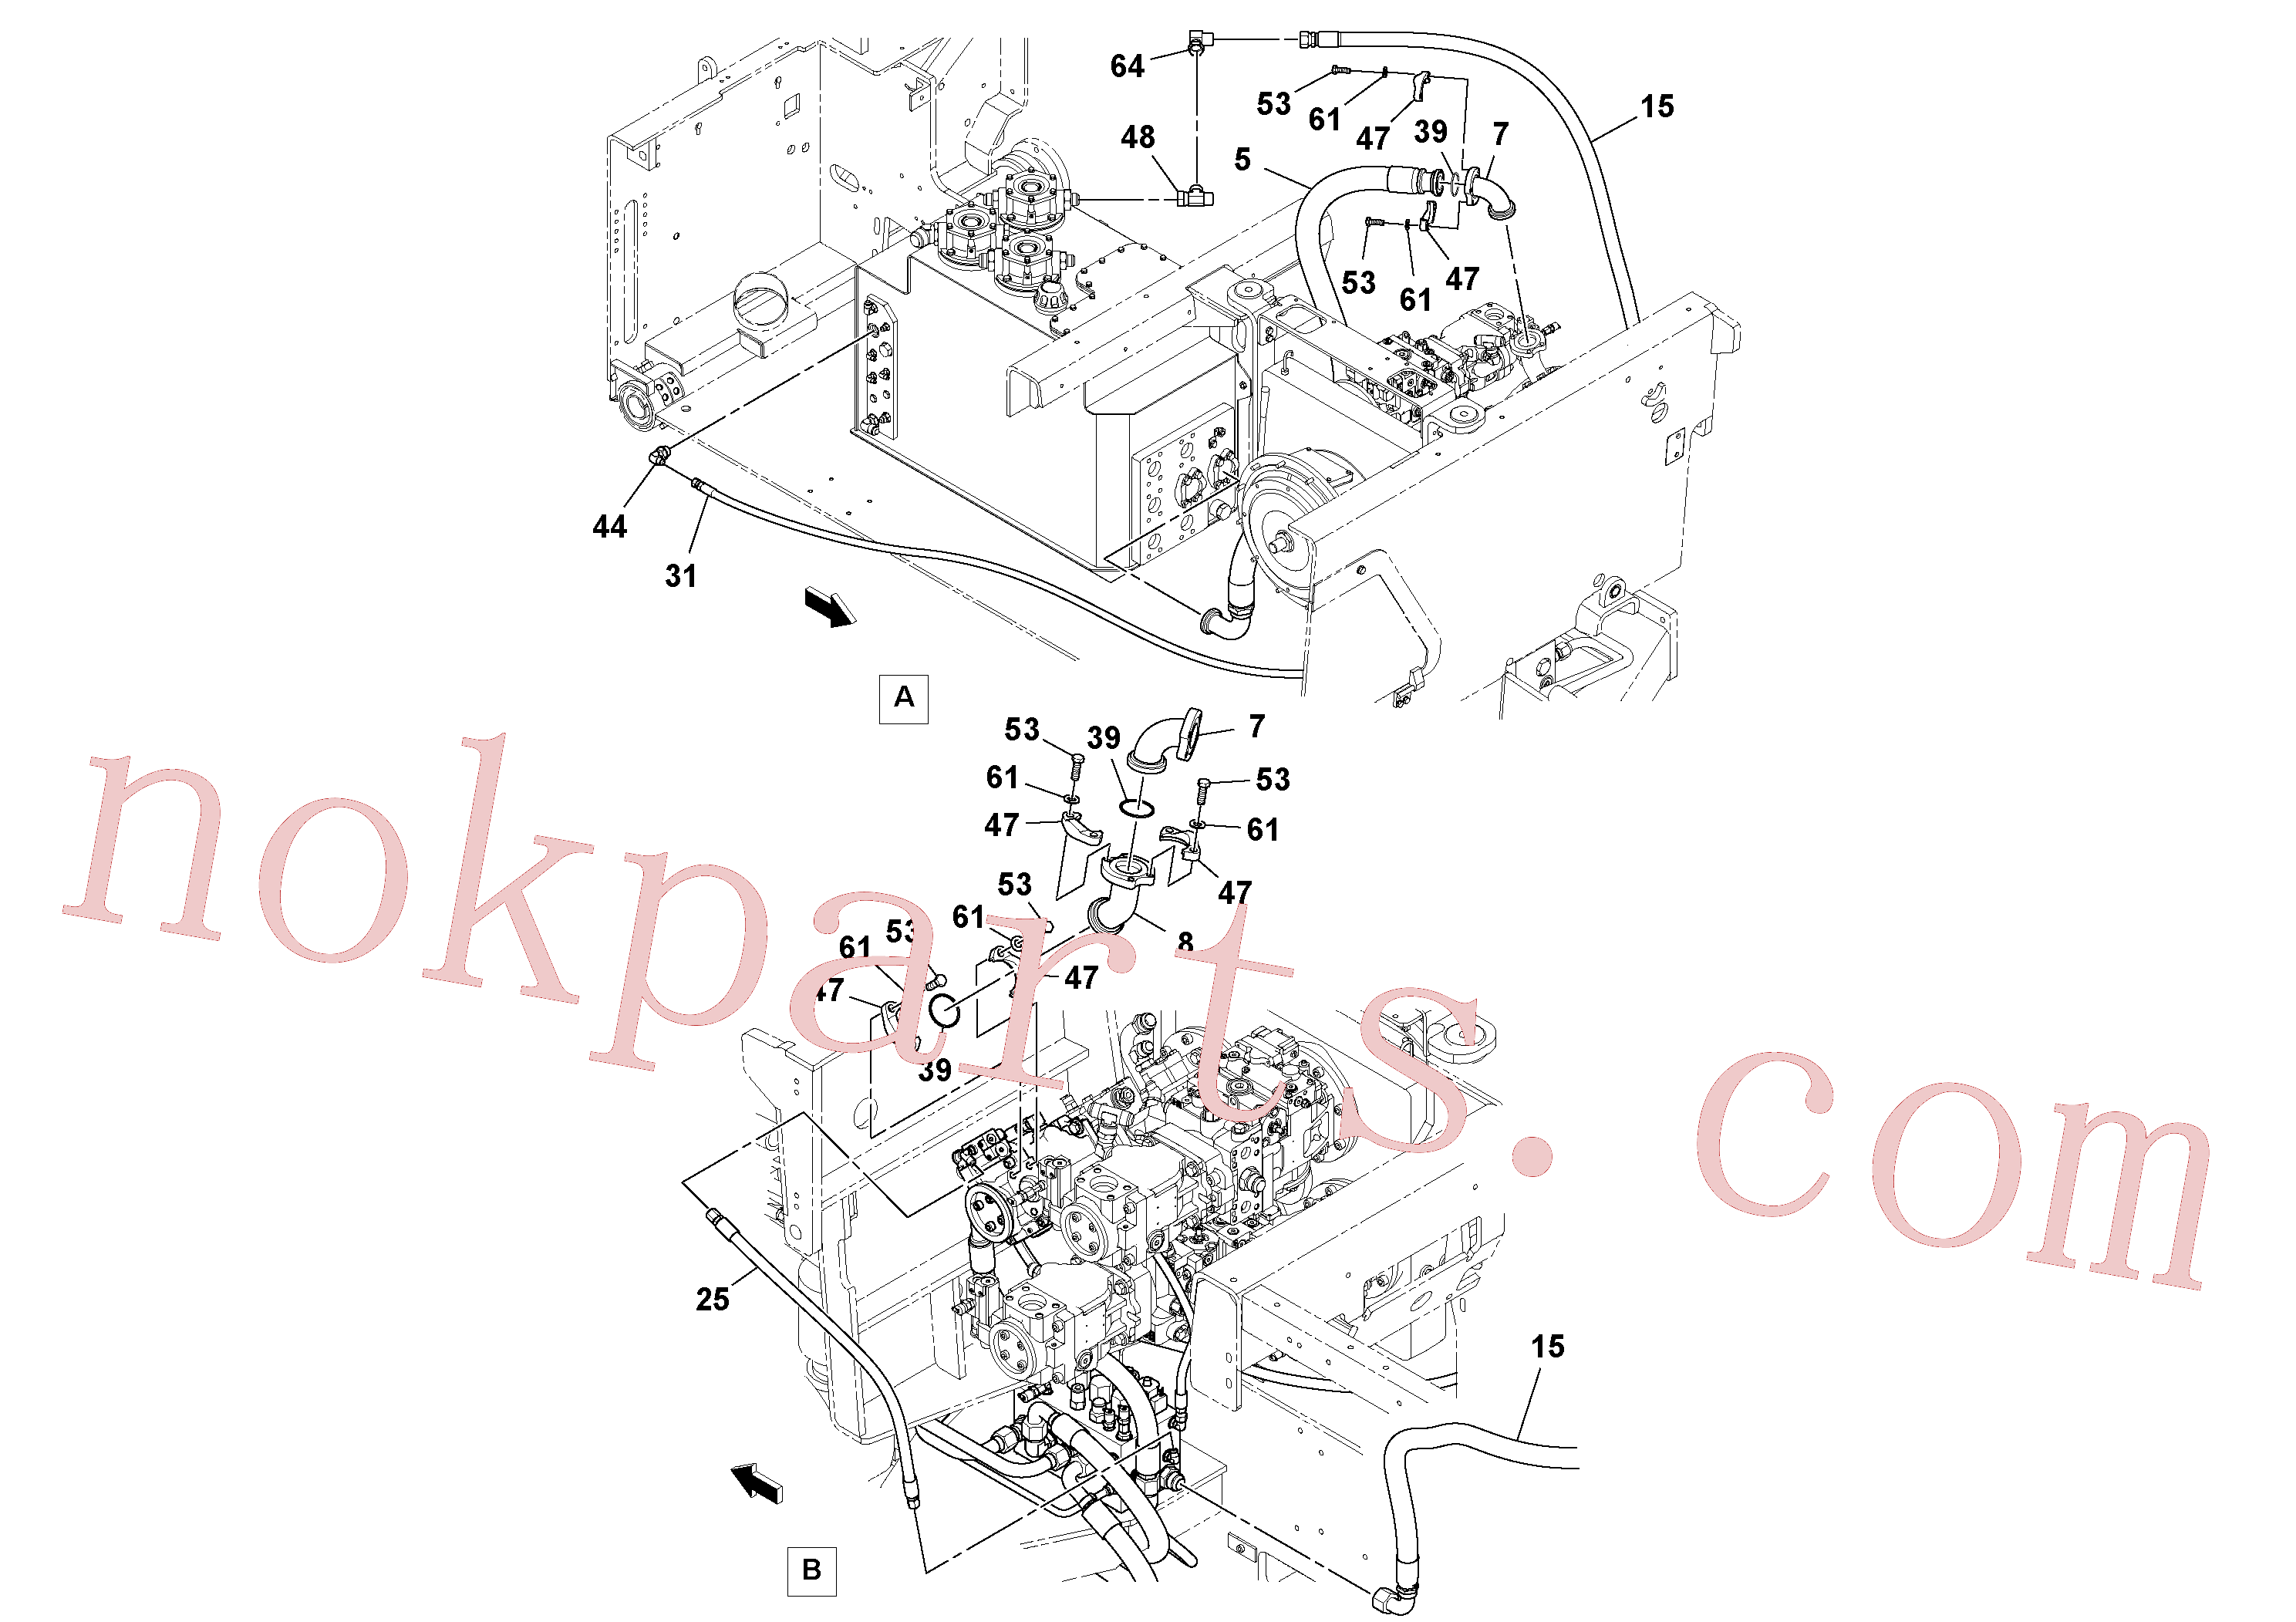 RM96734272 for Volvo Fwa Hydraulic Installation(1044612 assembly)